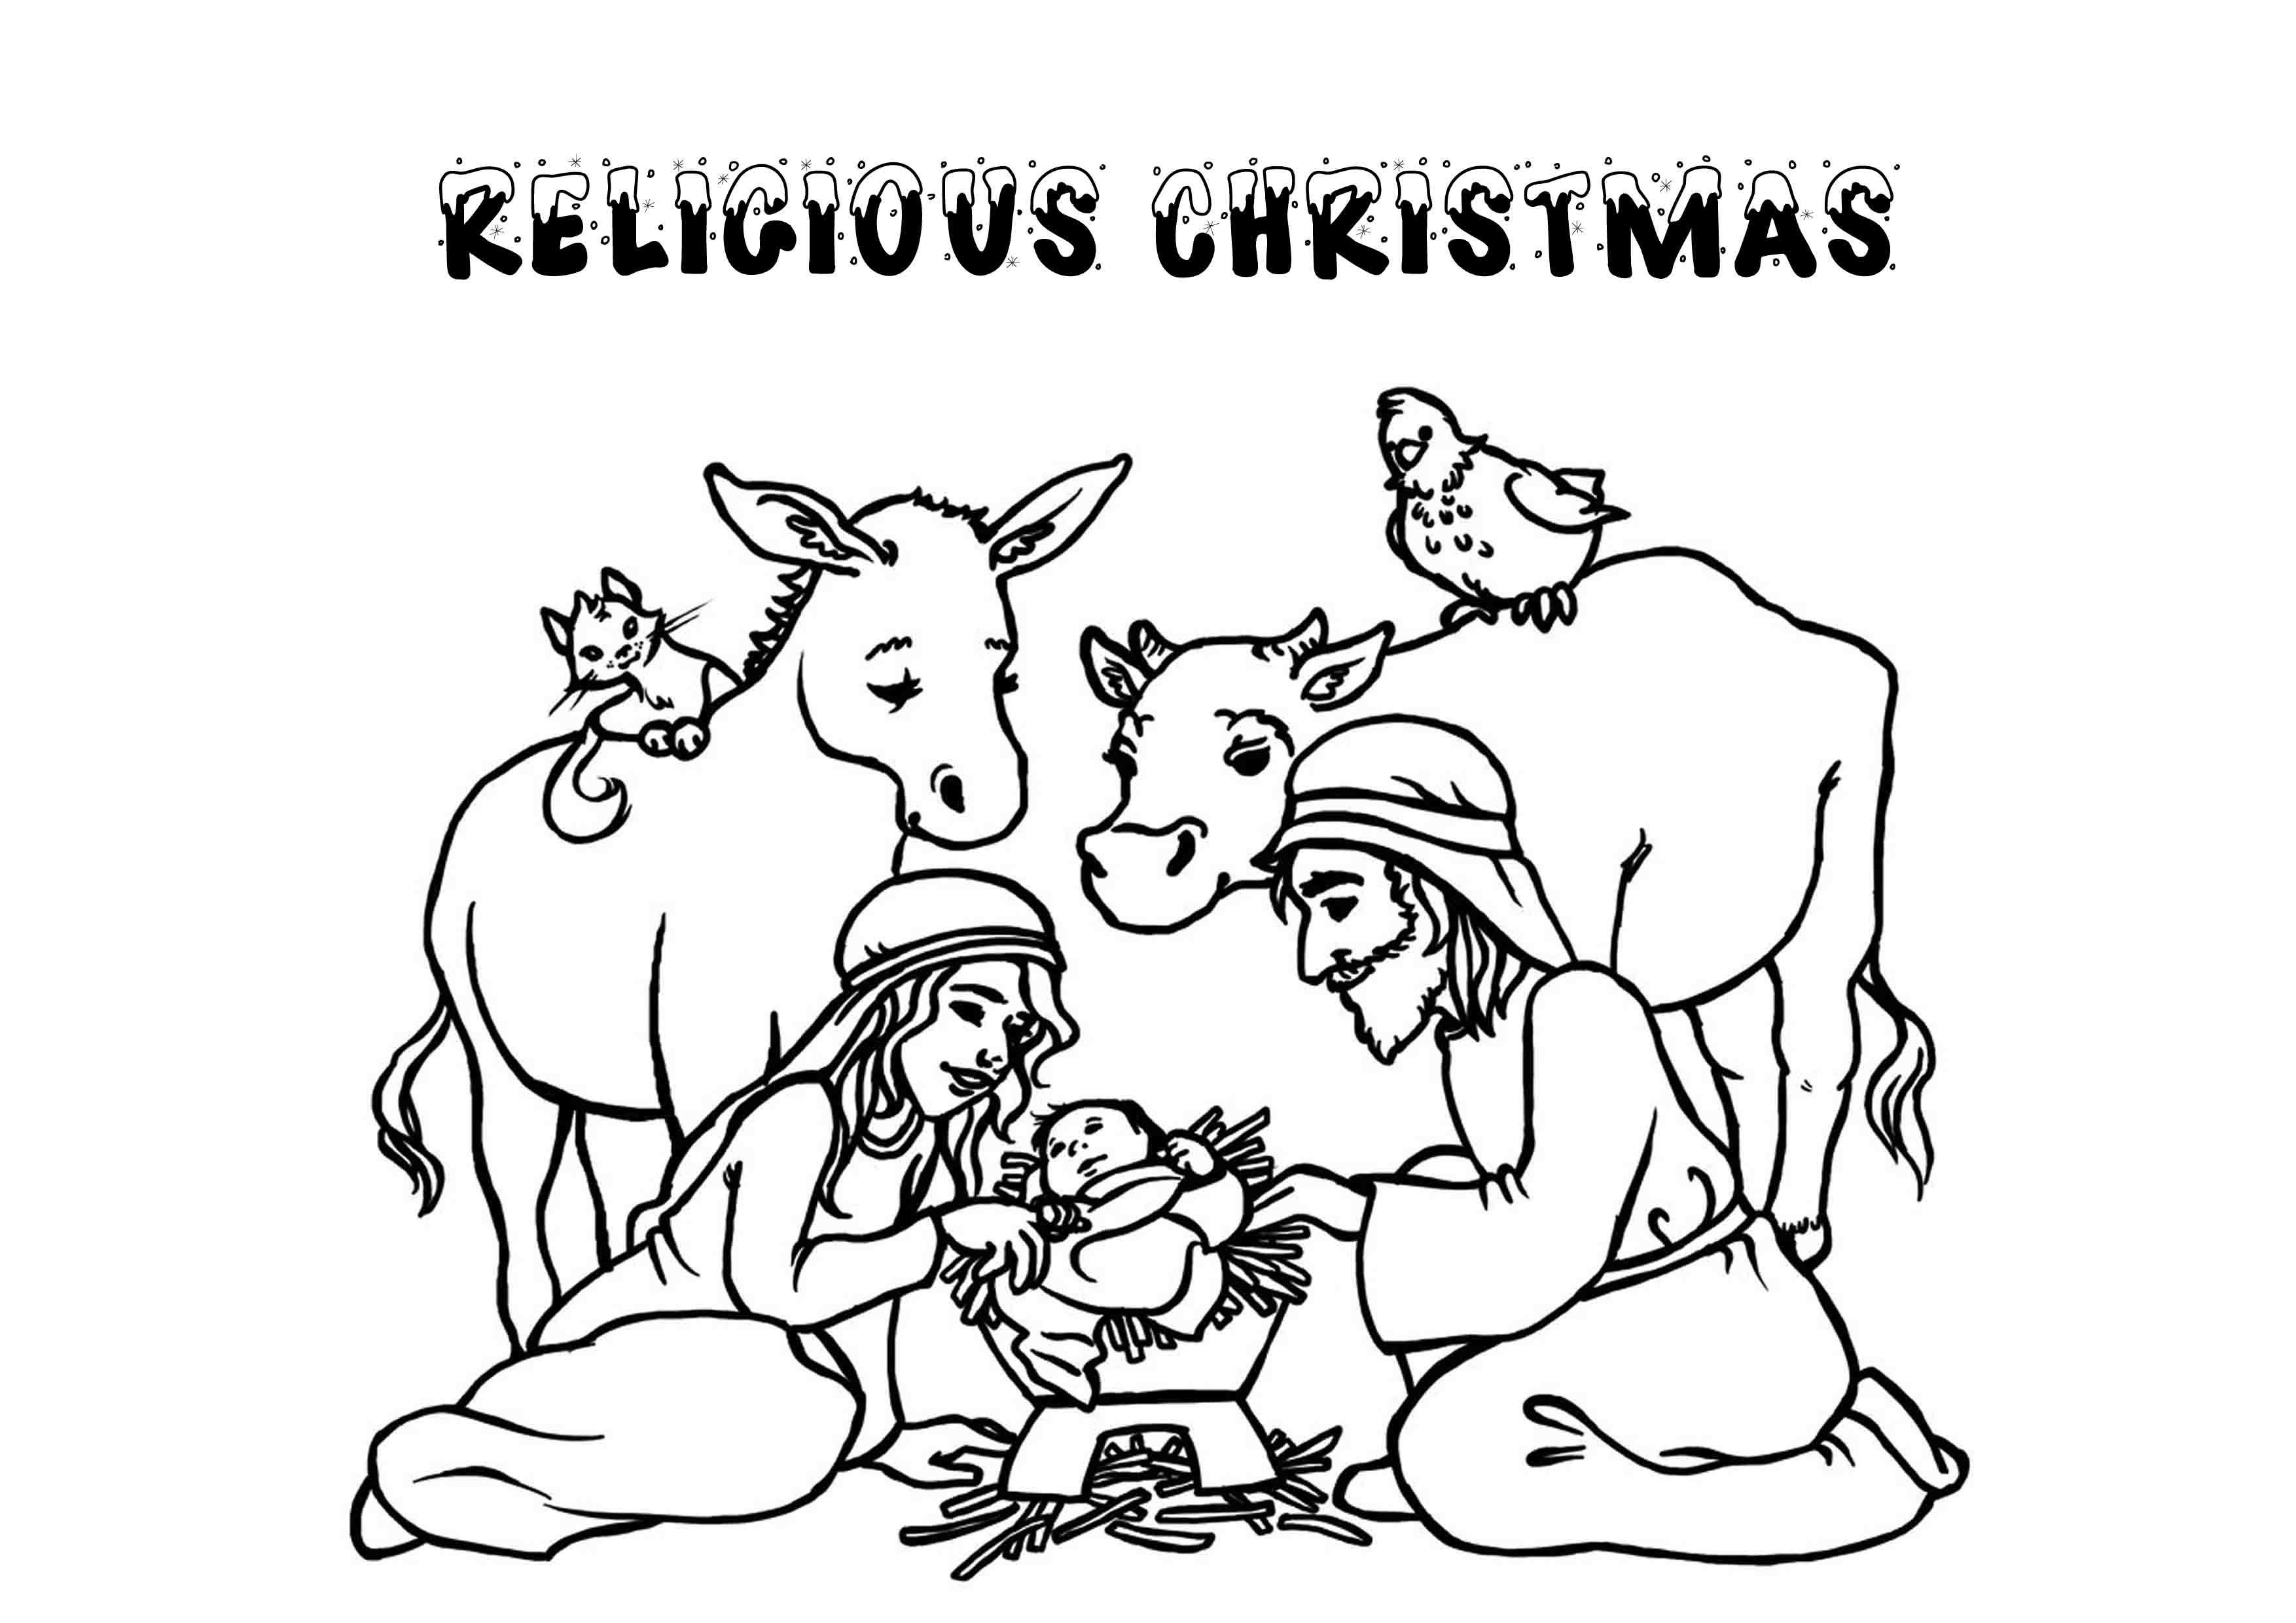 christmas christian coloring pages the best free religious coloring page images download christmas christian pages coloring